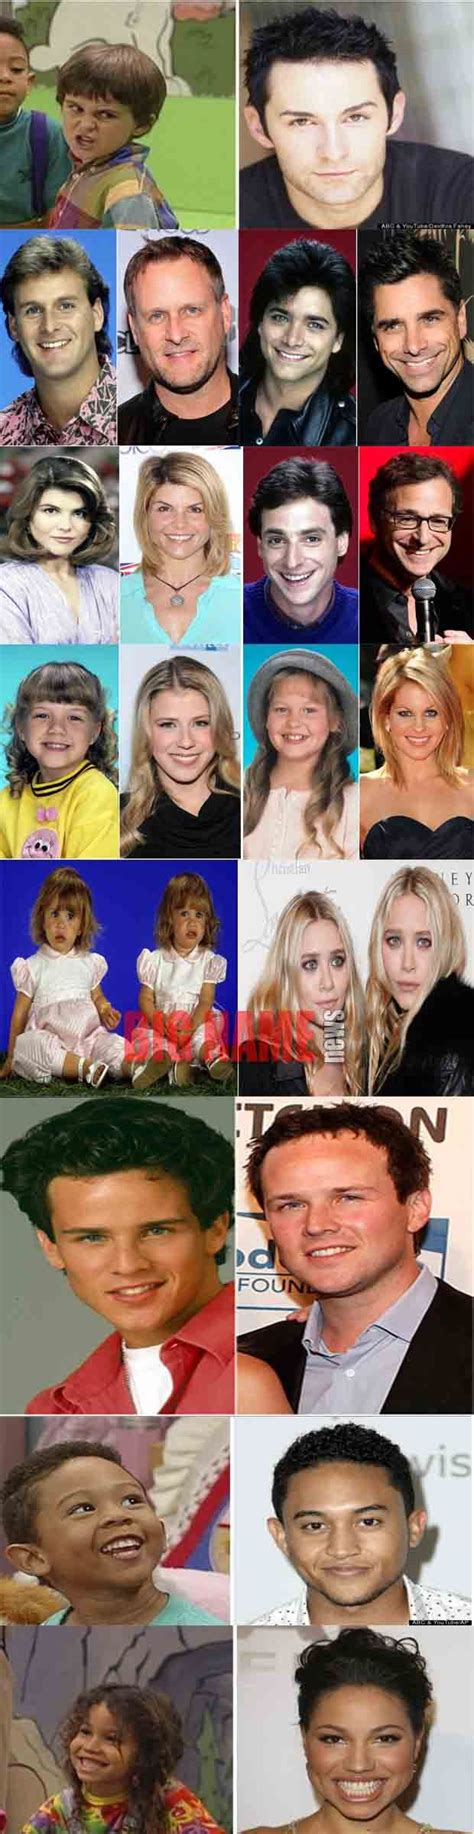 17 Best Ideas About Full House Cast On Pinterest Full House Full House Quotes And